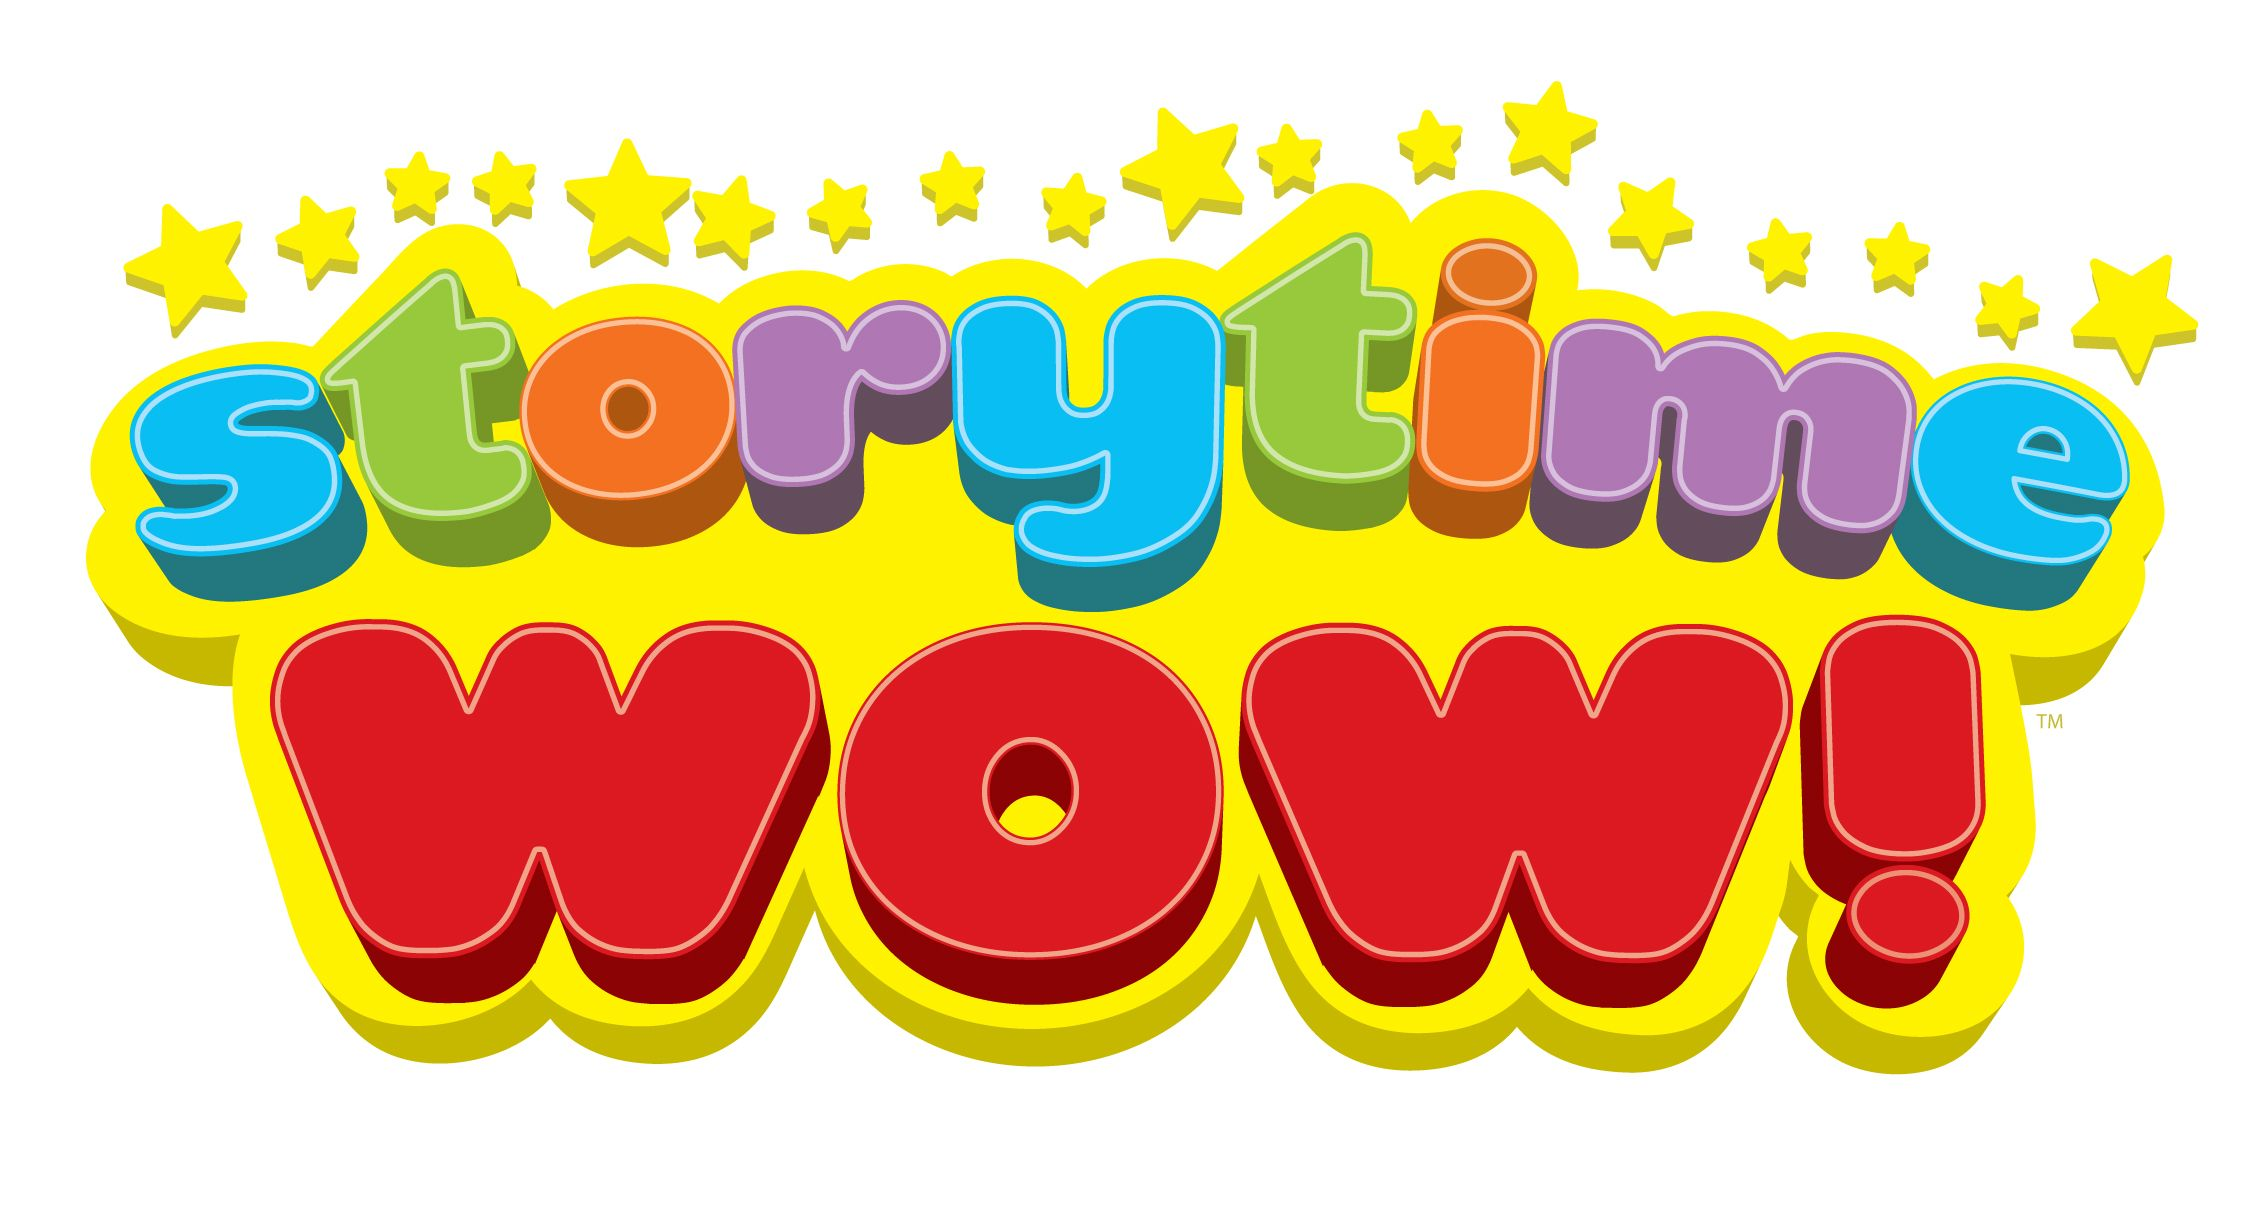 storytime clipart - Google Search   Library events, Public library, Spark up